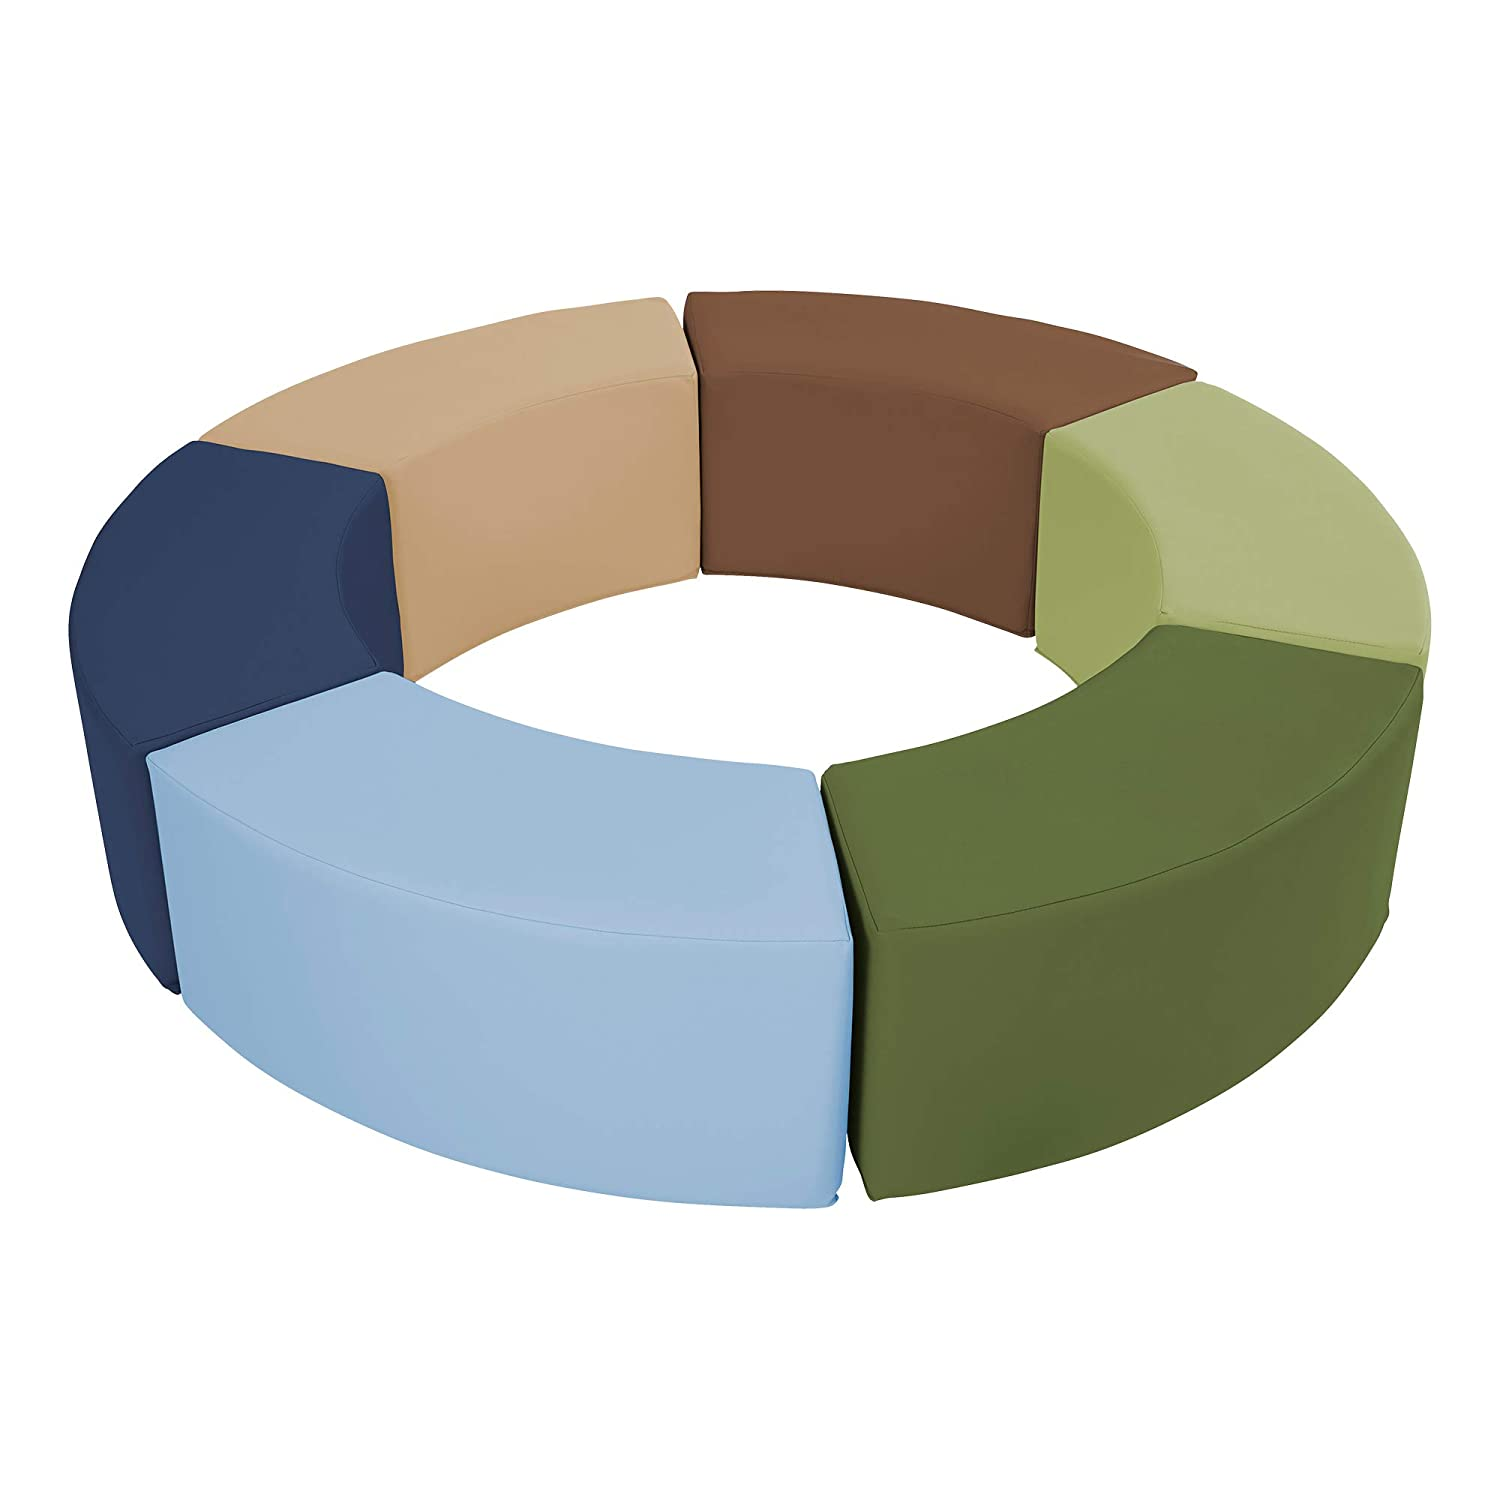 Sprogs Foam Soft Flexible Seating S-Curve Stool Set for Toddlers and Kids- Six Piece Set - Earthtone Assorted Colors (SPG-1520-ET)